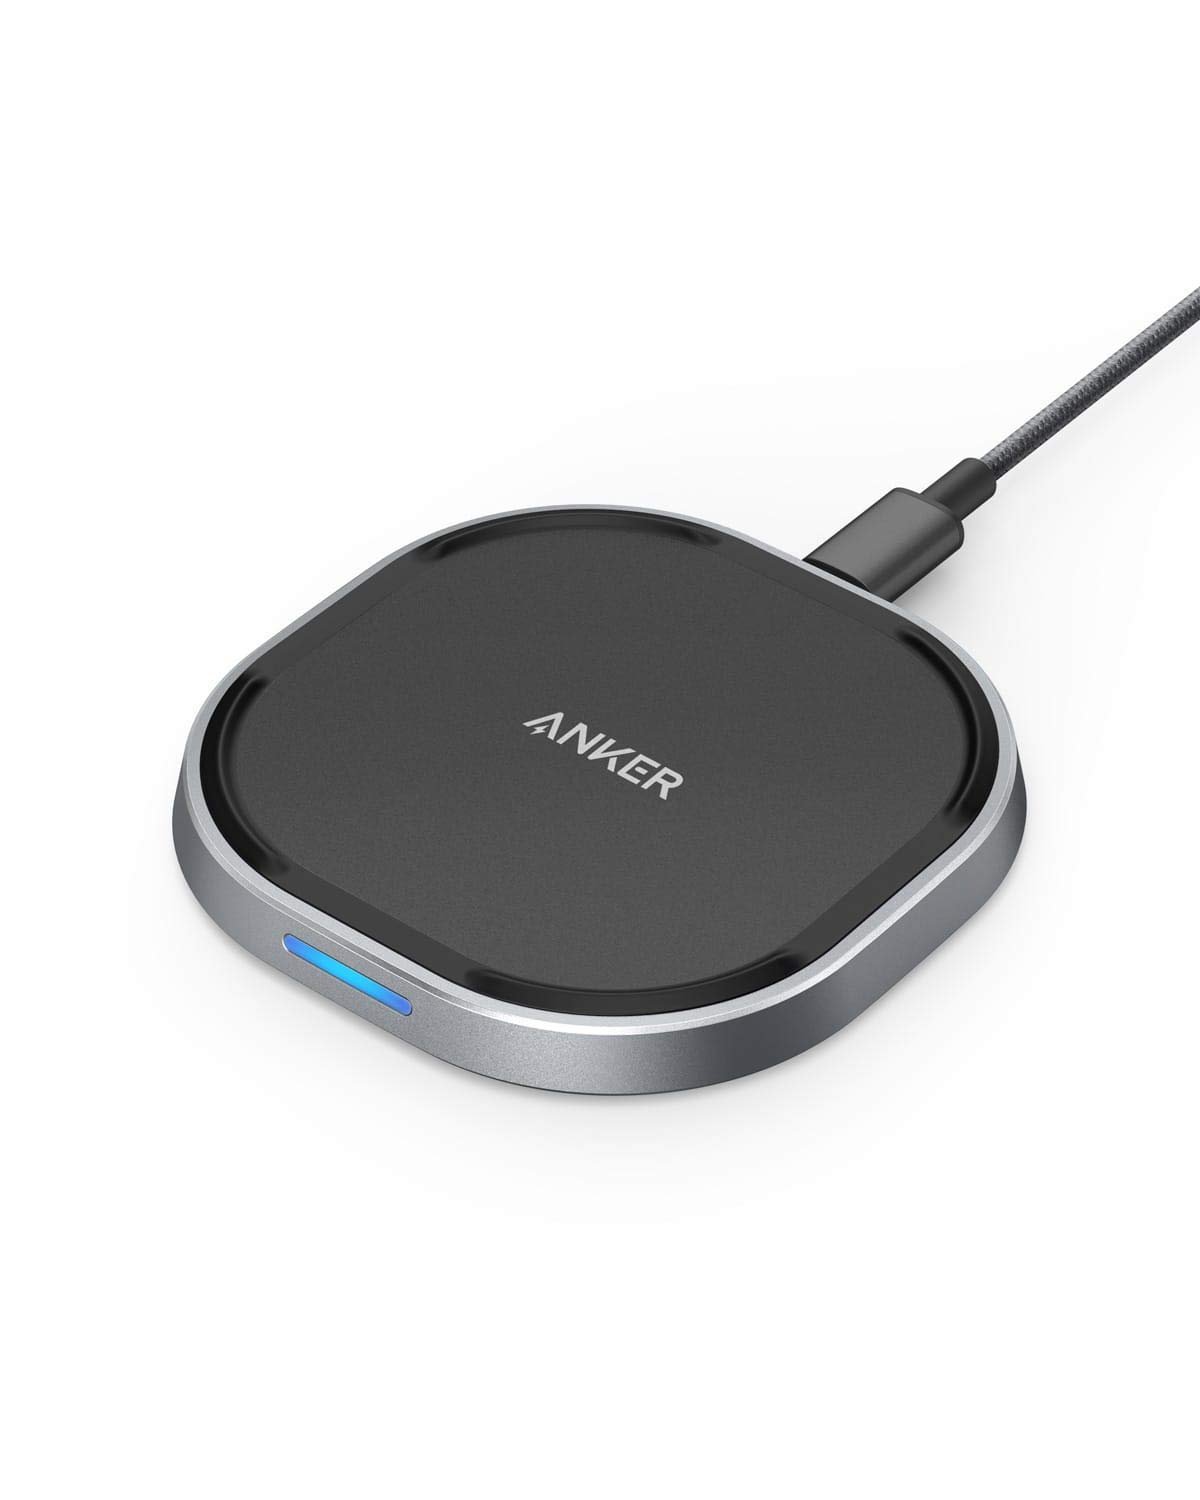 Anker Wireless Charger with USB-C, 15W Metal Fast Wireless Charging Pad, Qi-Certified, 7.5W Fast Charge iPhone XS/XS Max/XR/X/8/8 Plus, 10W for Galaxy S9/S9+/S8/Note 9, PowerWave 15 Pad(No AC Adapter)